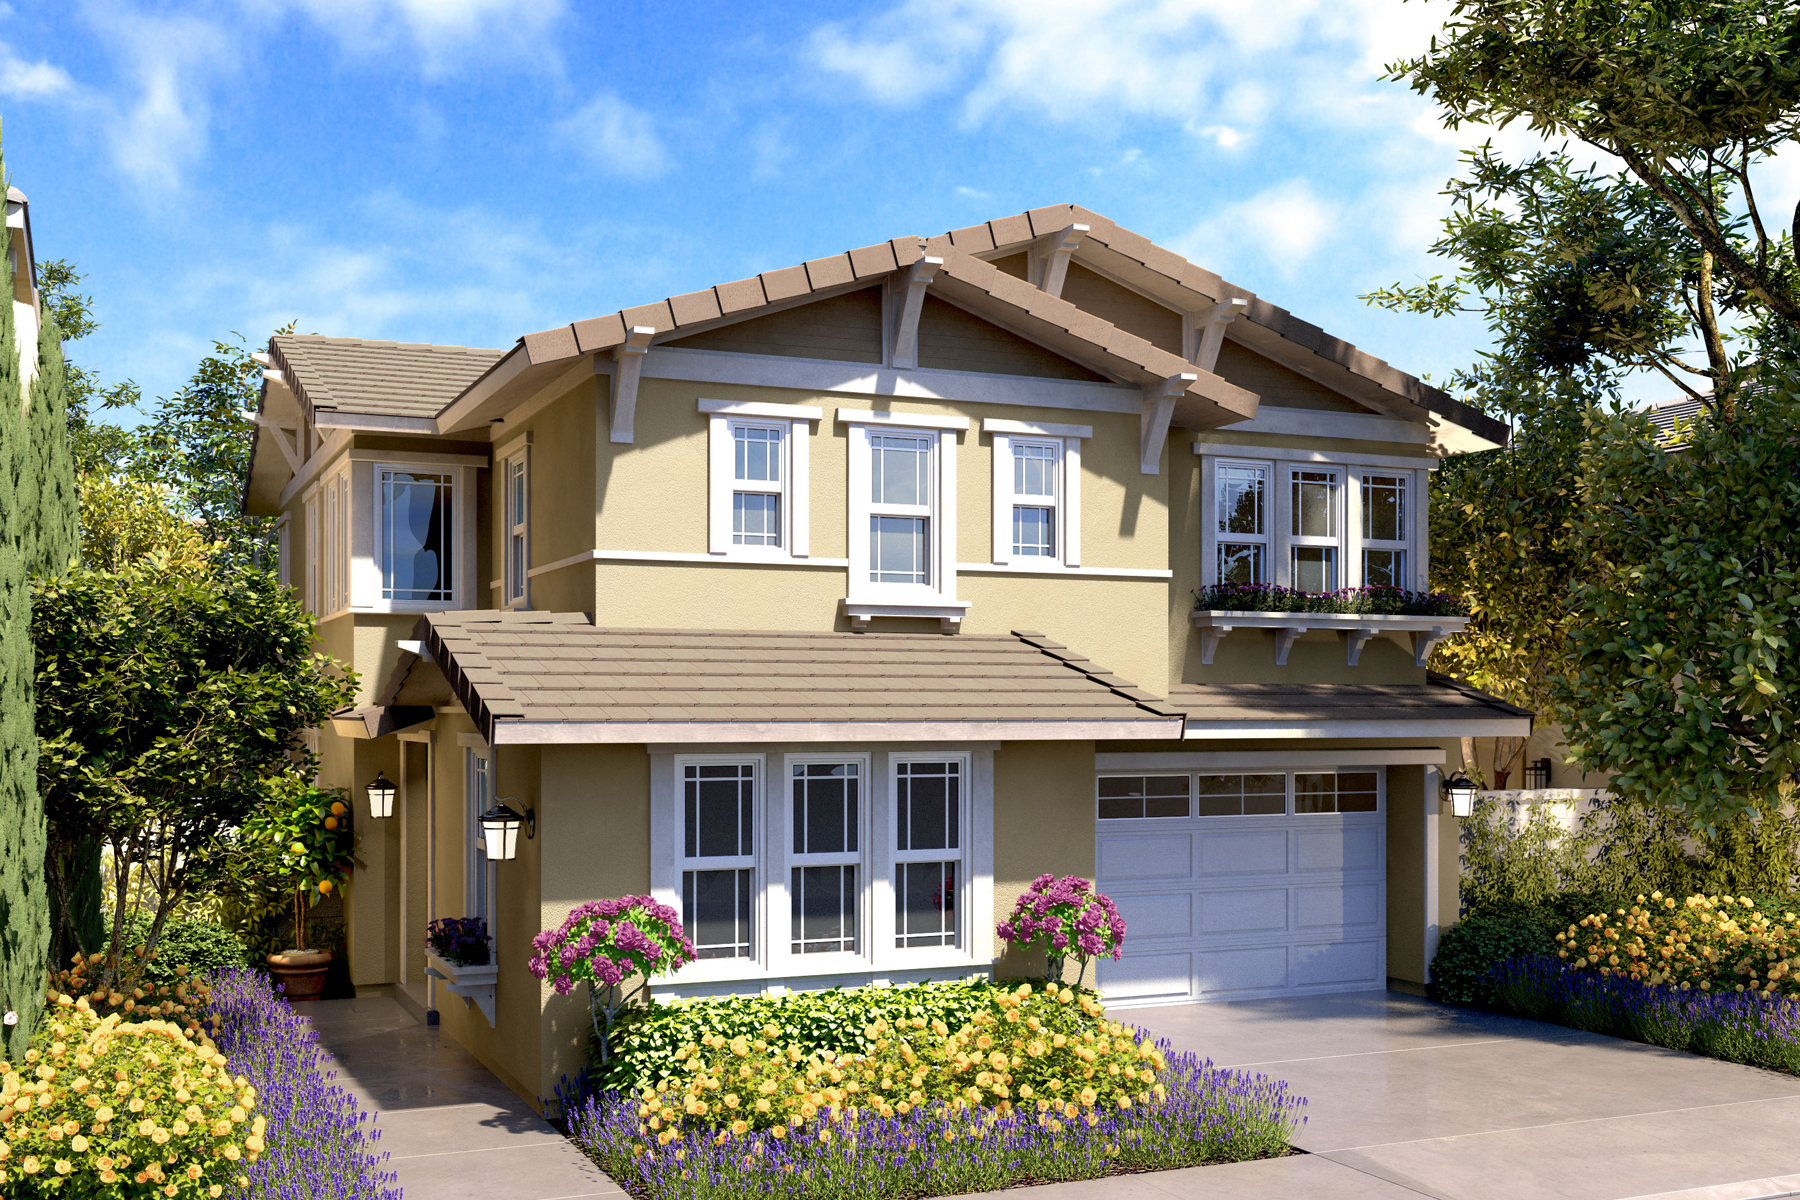 irvine new homes, new irvine homes, irvine real estate